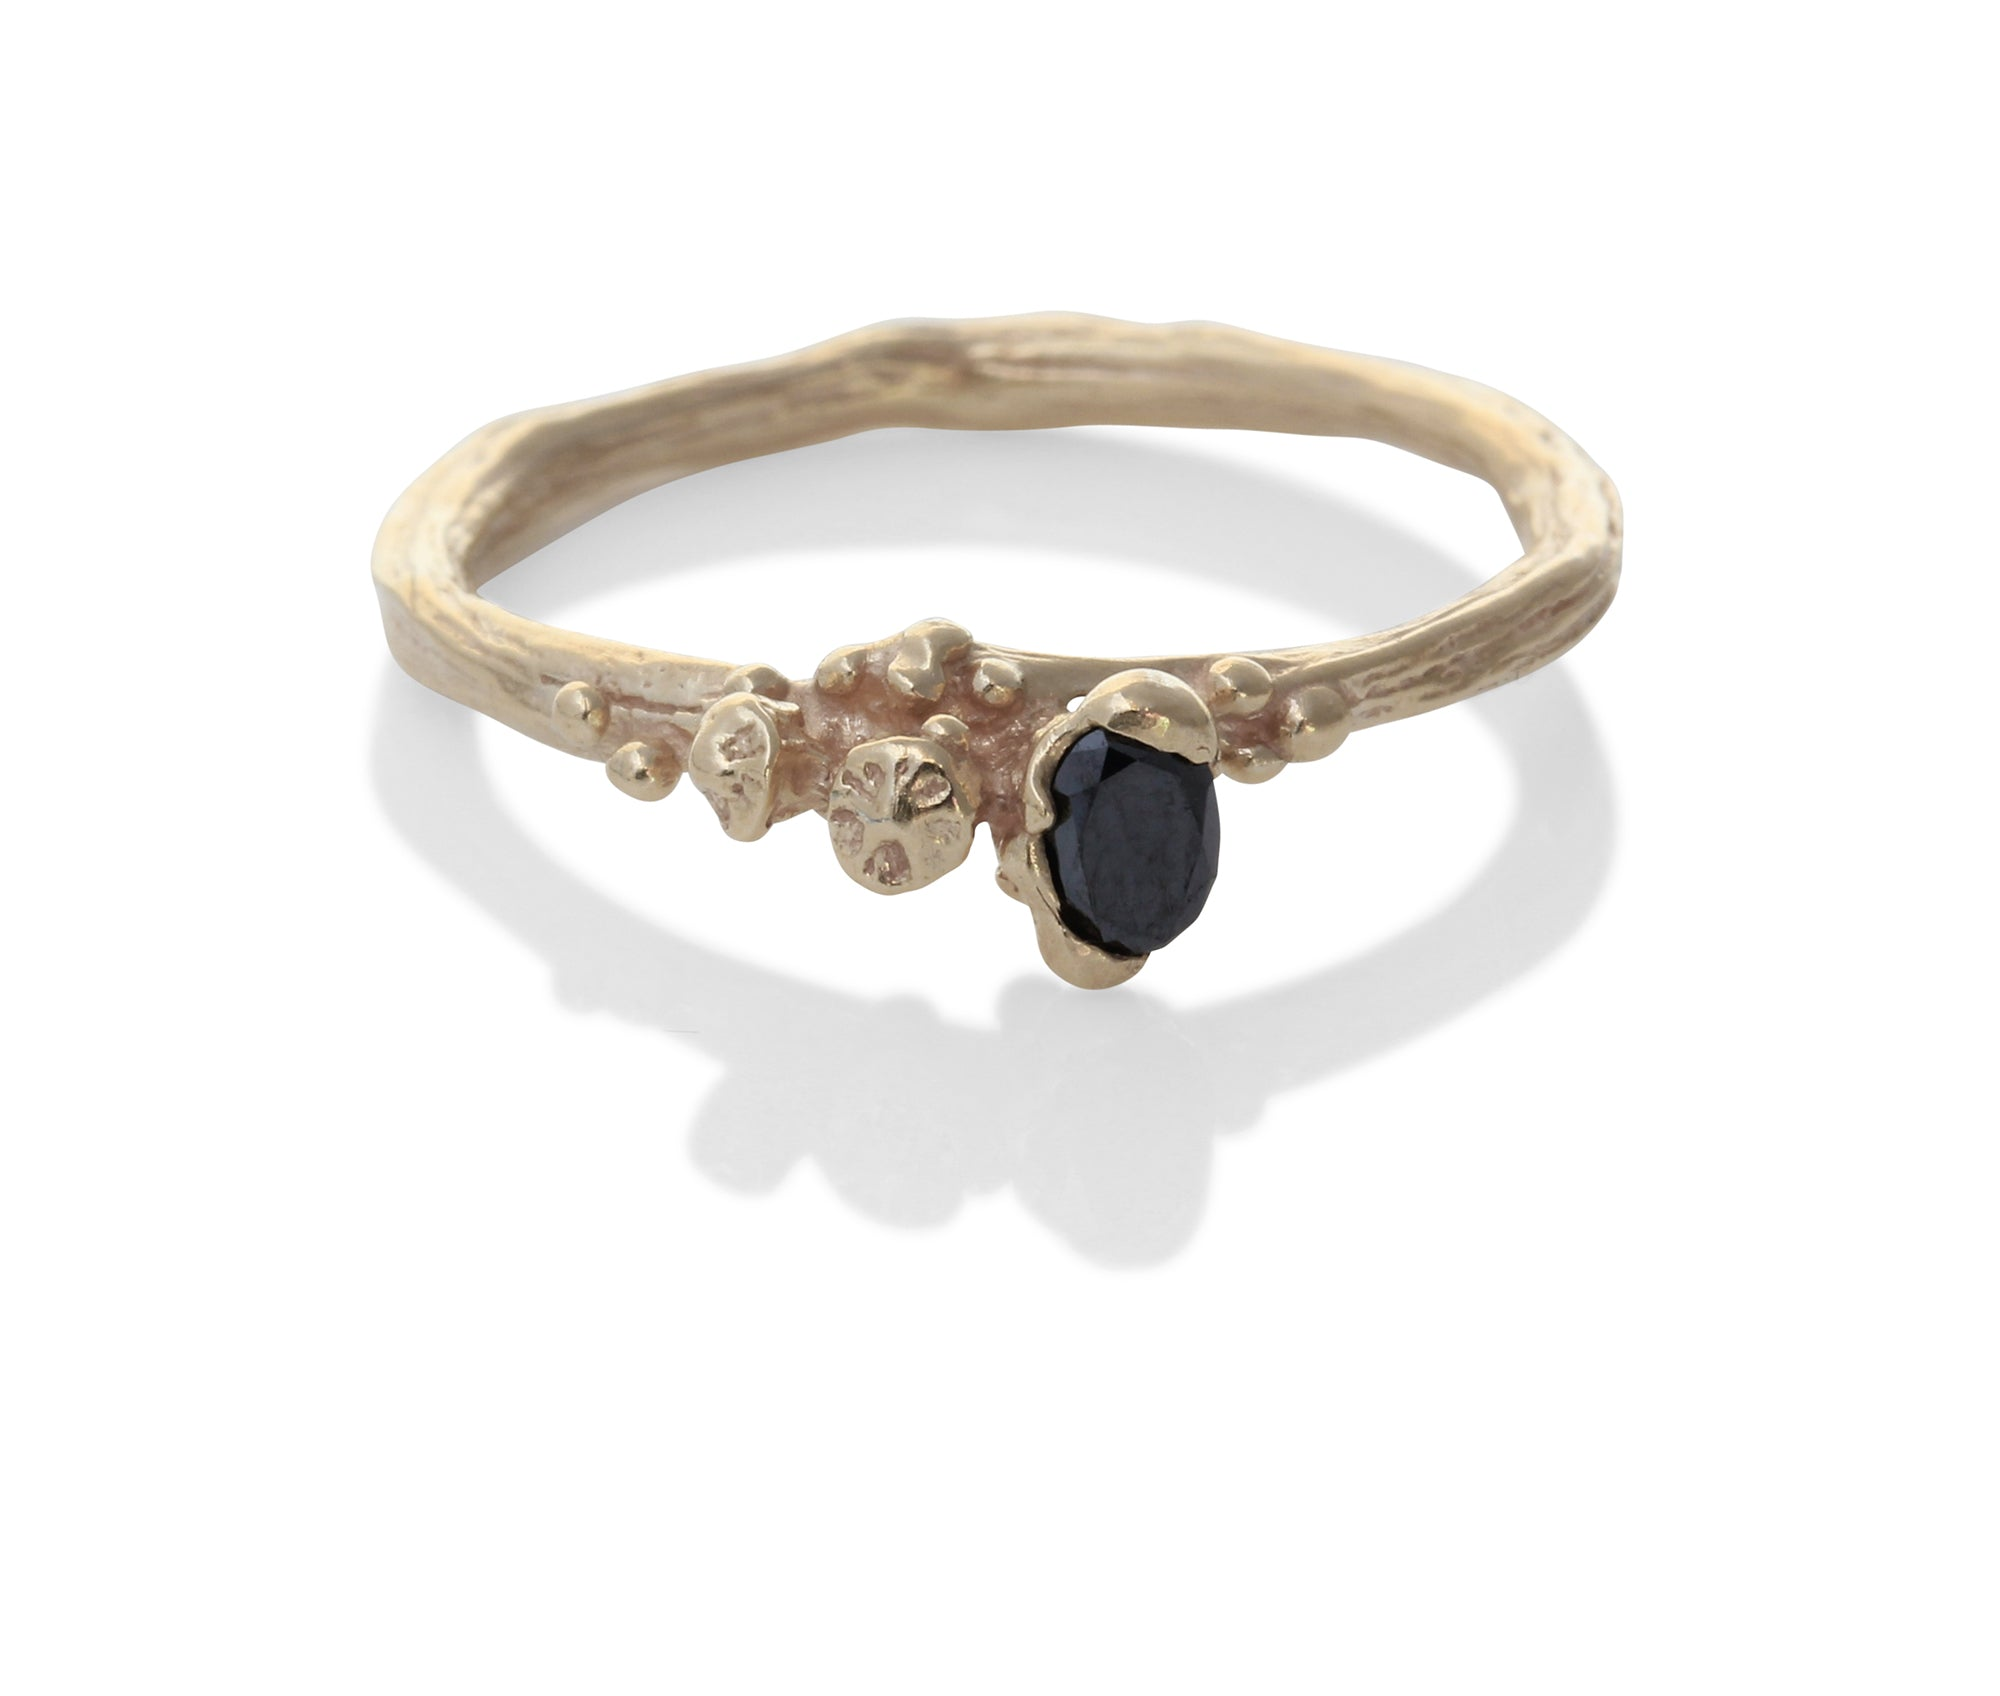 Berries oval black diamond - EilyOConnell